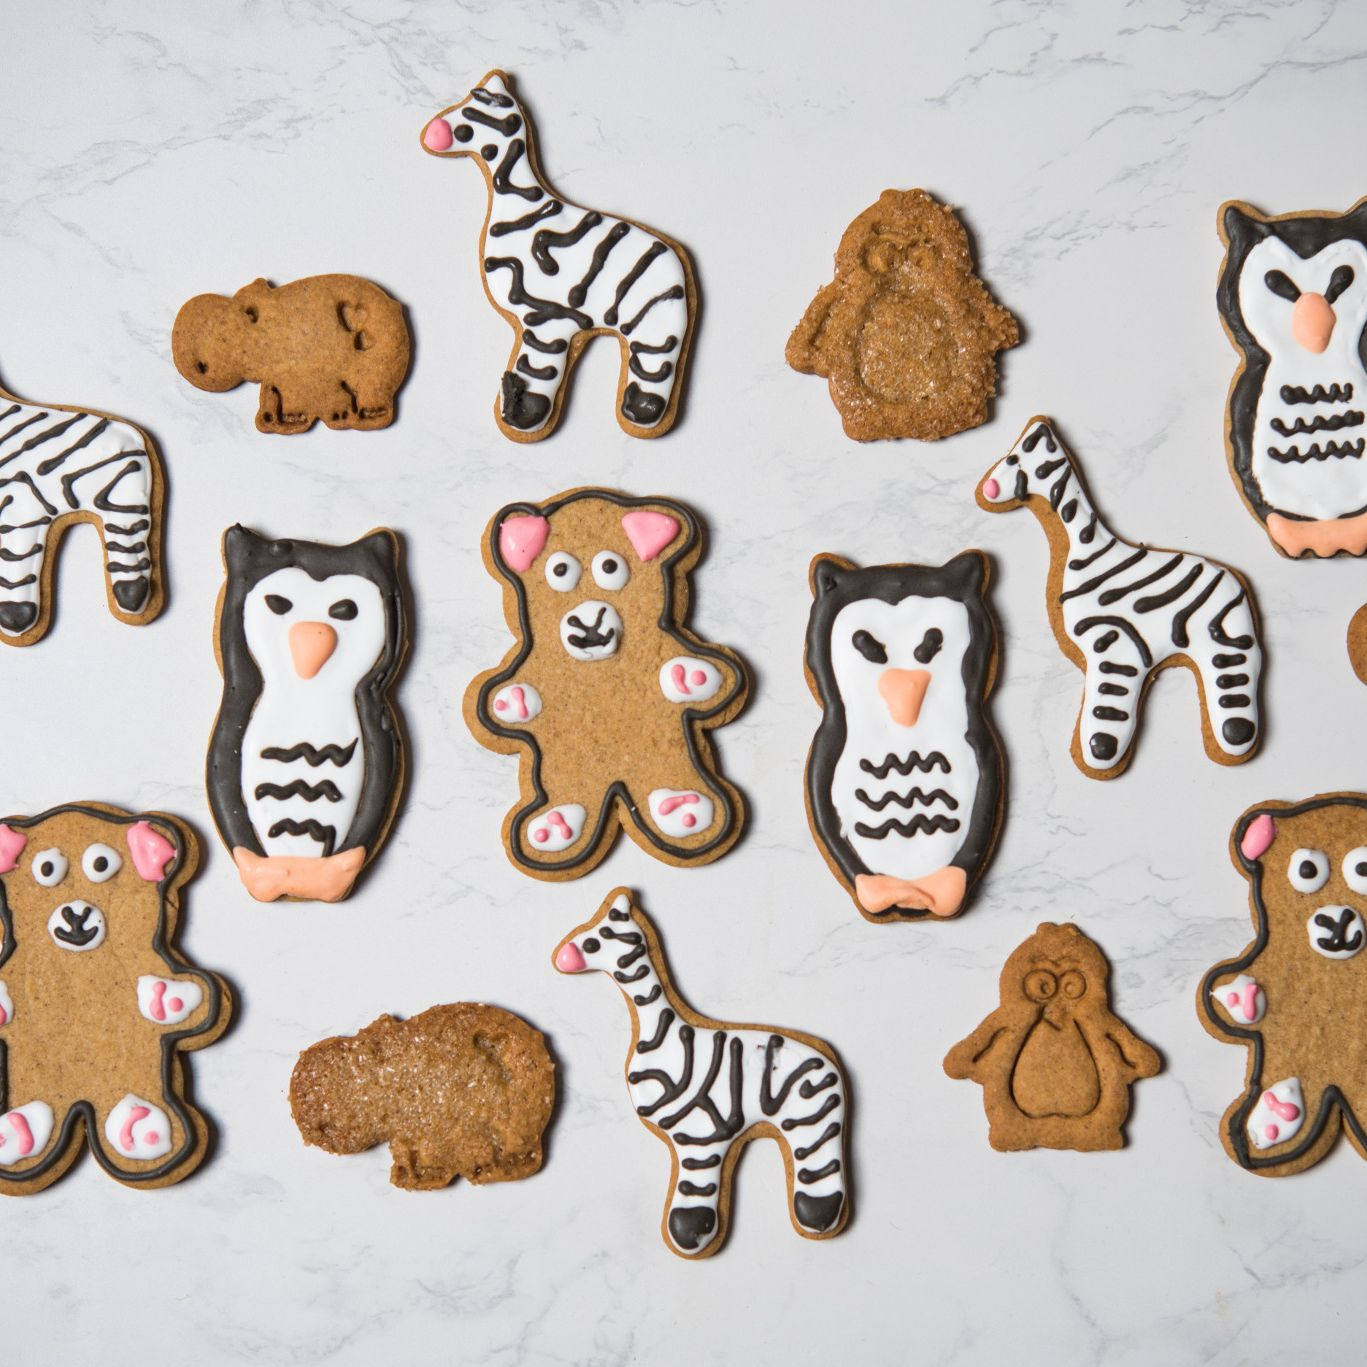 cinnamon_animal_cookies31896.jpg